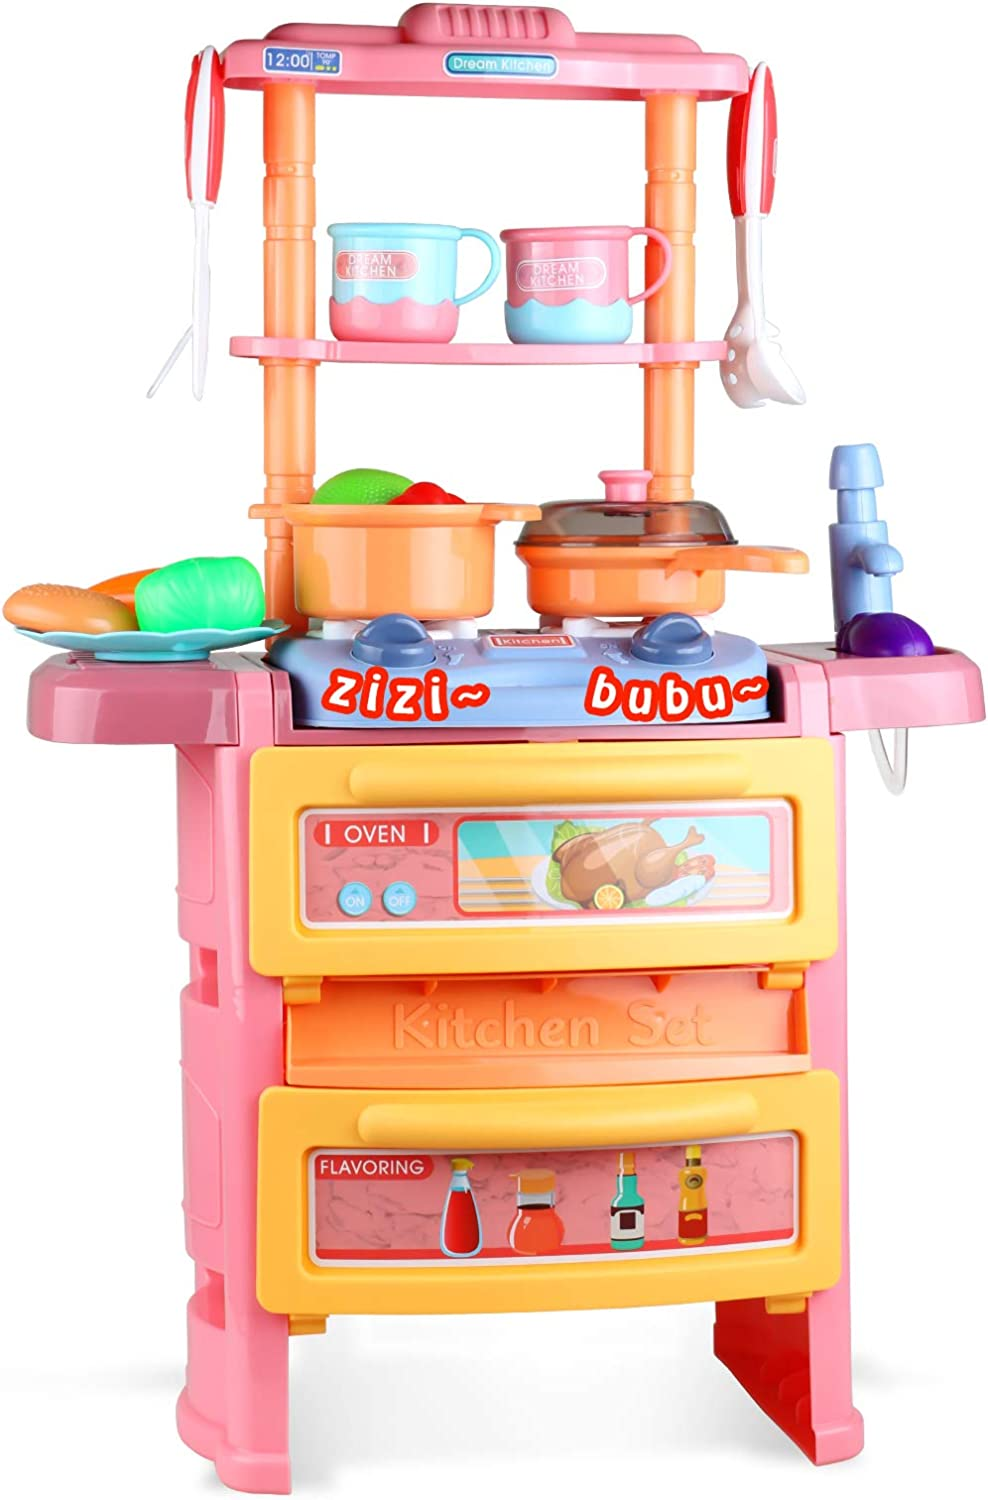 Beletops Play Kitchen, Kids Kitchen Playset Pretend Play Cooking Toys Play Food Kitchen Set with Realistic Light, Sound and Running Water for Toddlers, Children, Boys, Girls, Kids. (14.2x7.5x21.7IN)